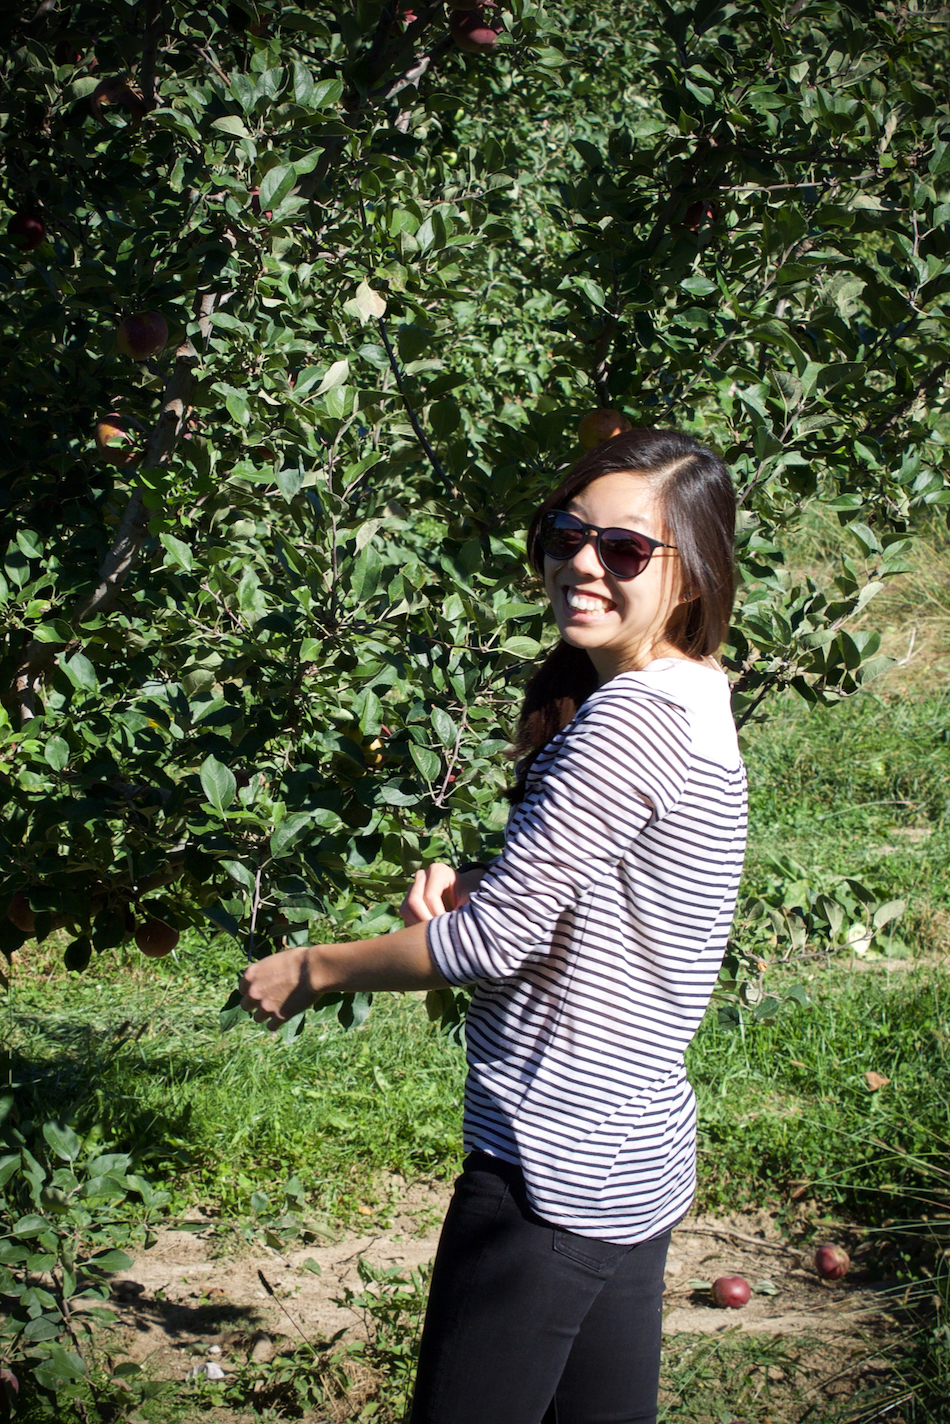 Anderson orchard 14.jpg